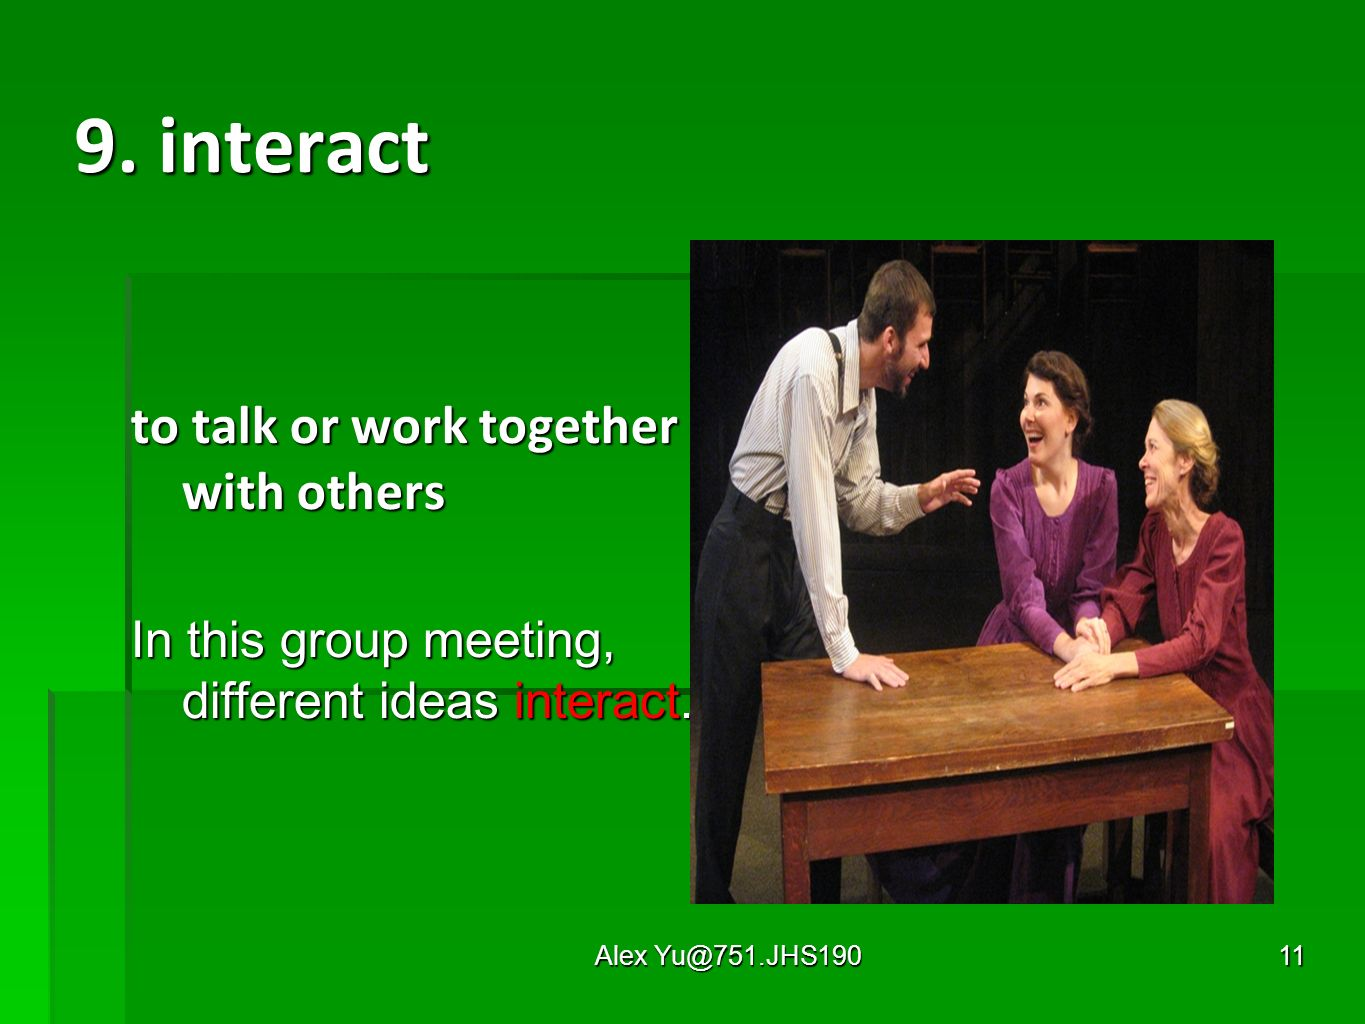 Alex Yu@751.JHS19011 9. interact to talk or work together with others In this group meeting, different ideas interact.